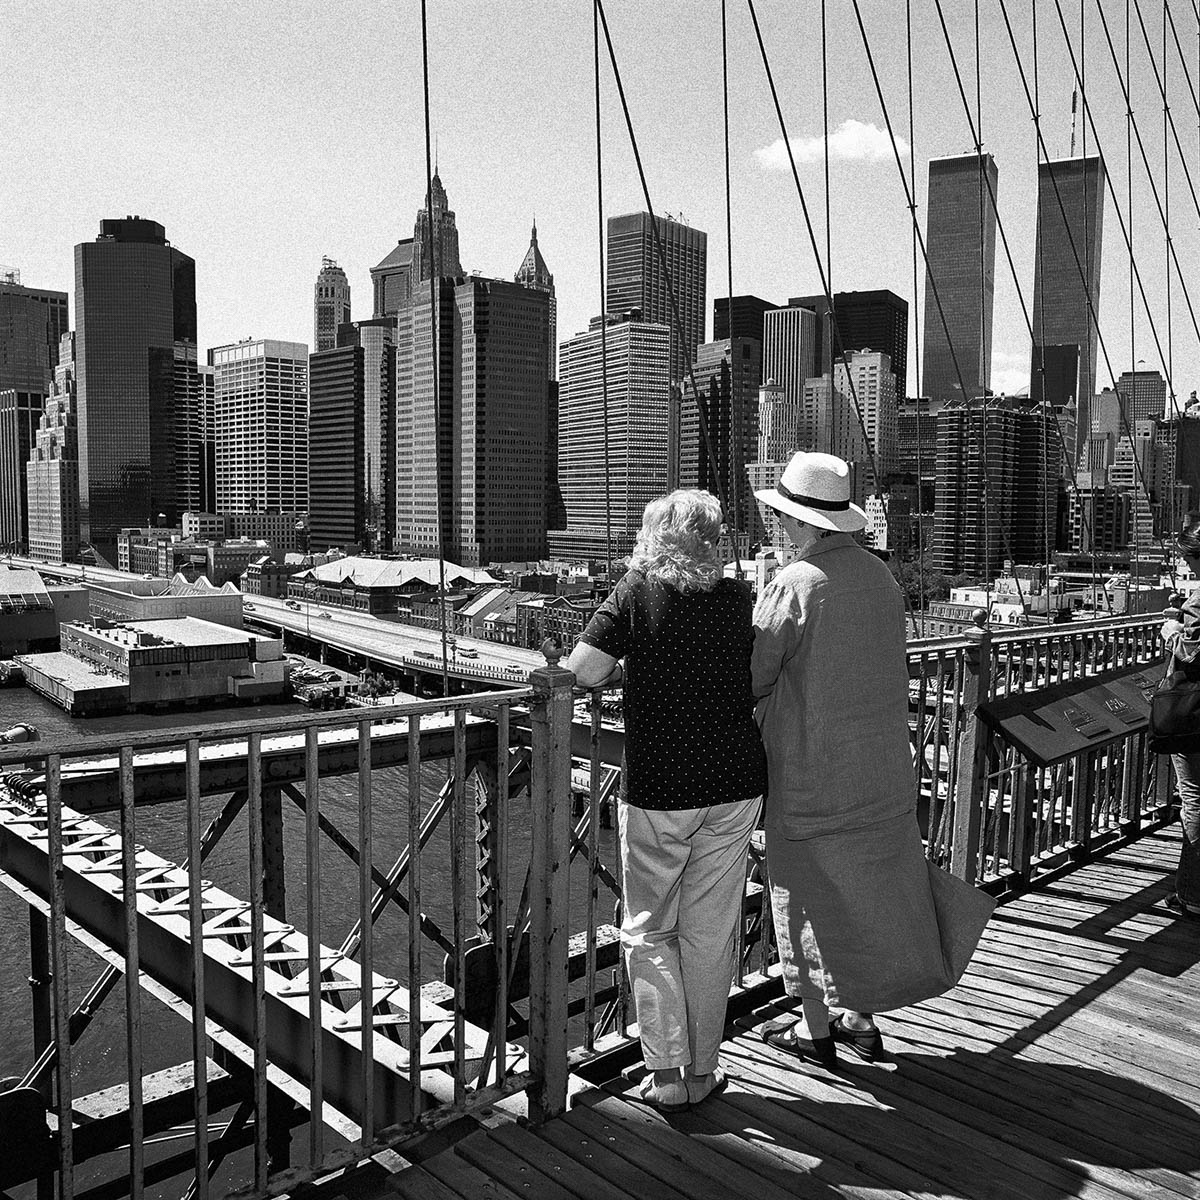 NYC Skyline from Brooklyn Bridge, New York, 2000